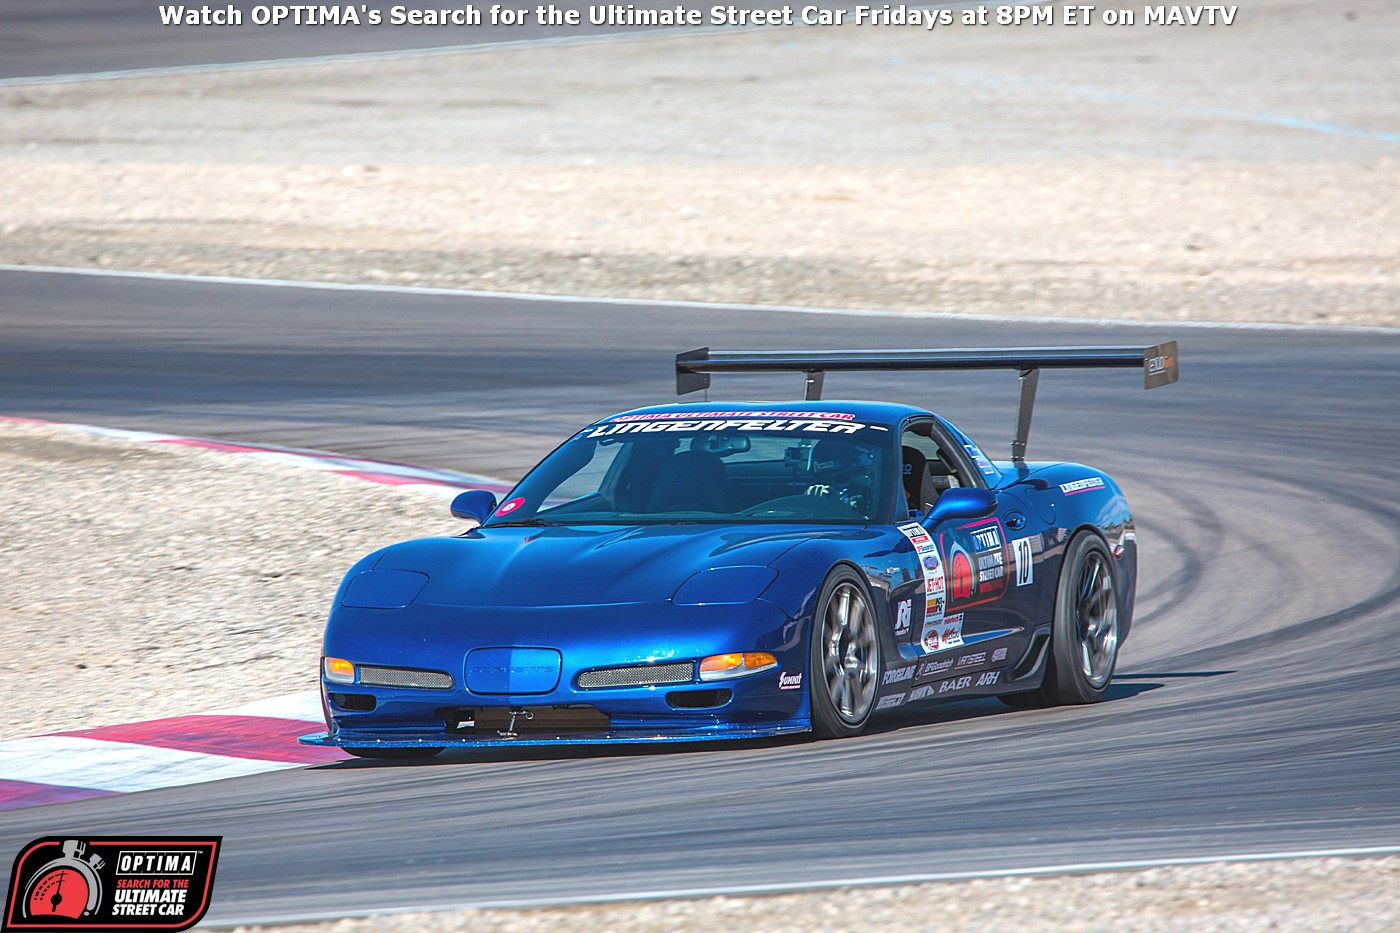 Danny-Popp-2003-Chevrolet-Corvette-BFGoodrich-Hot-Lap-Challenge-2014-OPTIMA-Ultimate-Street-Car-Invitational_316.jpg